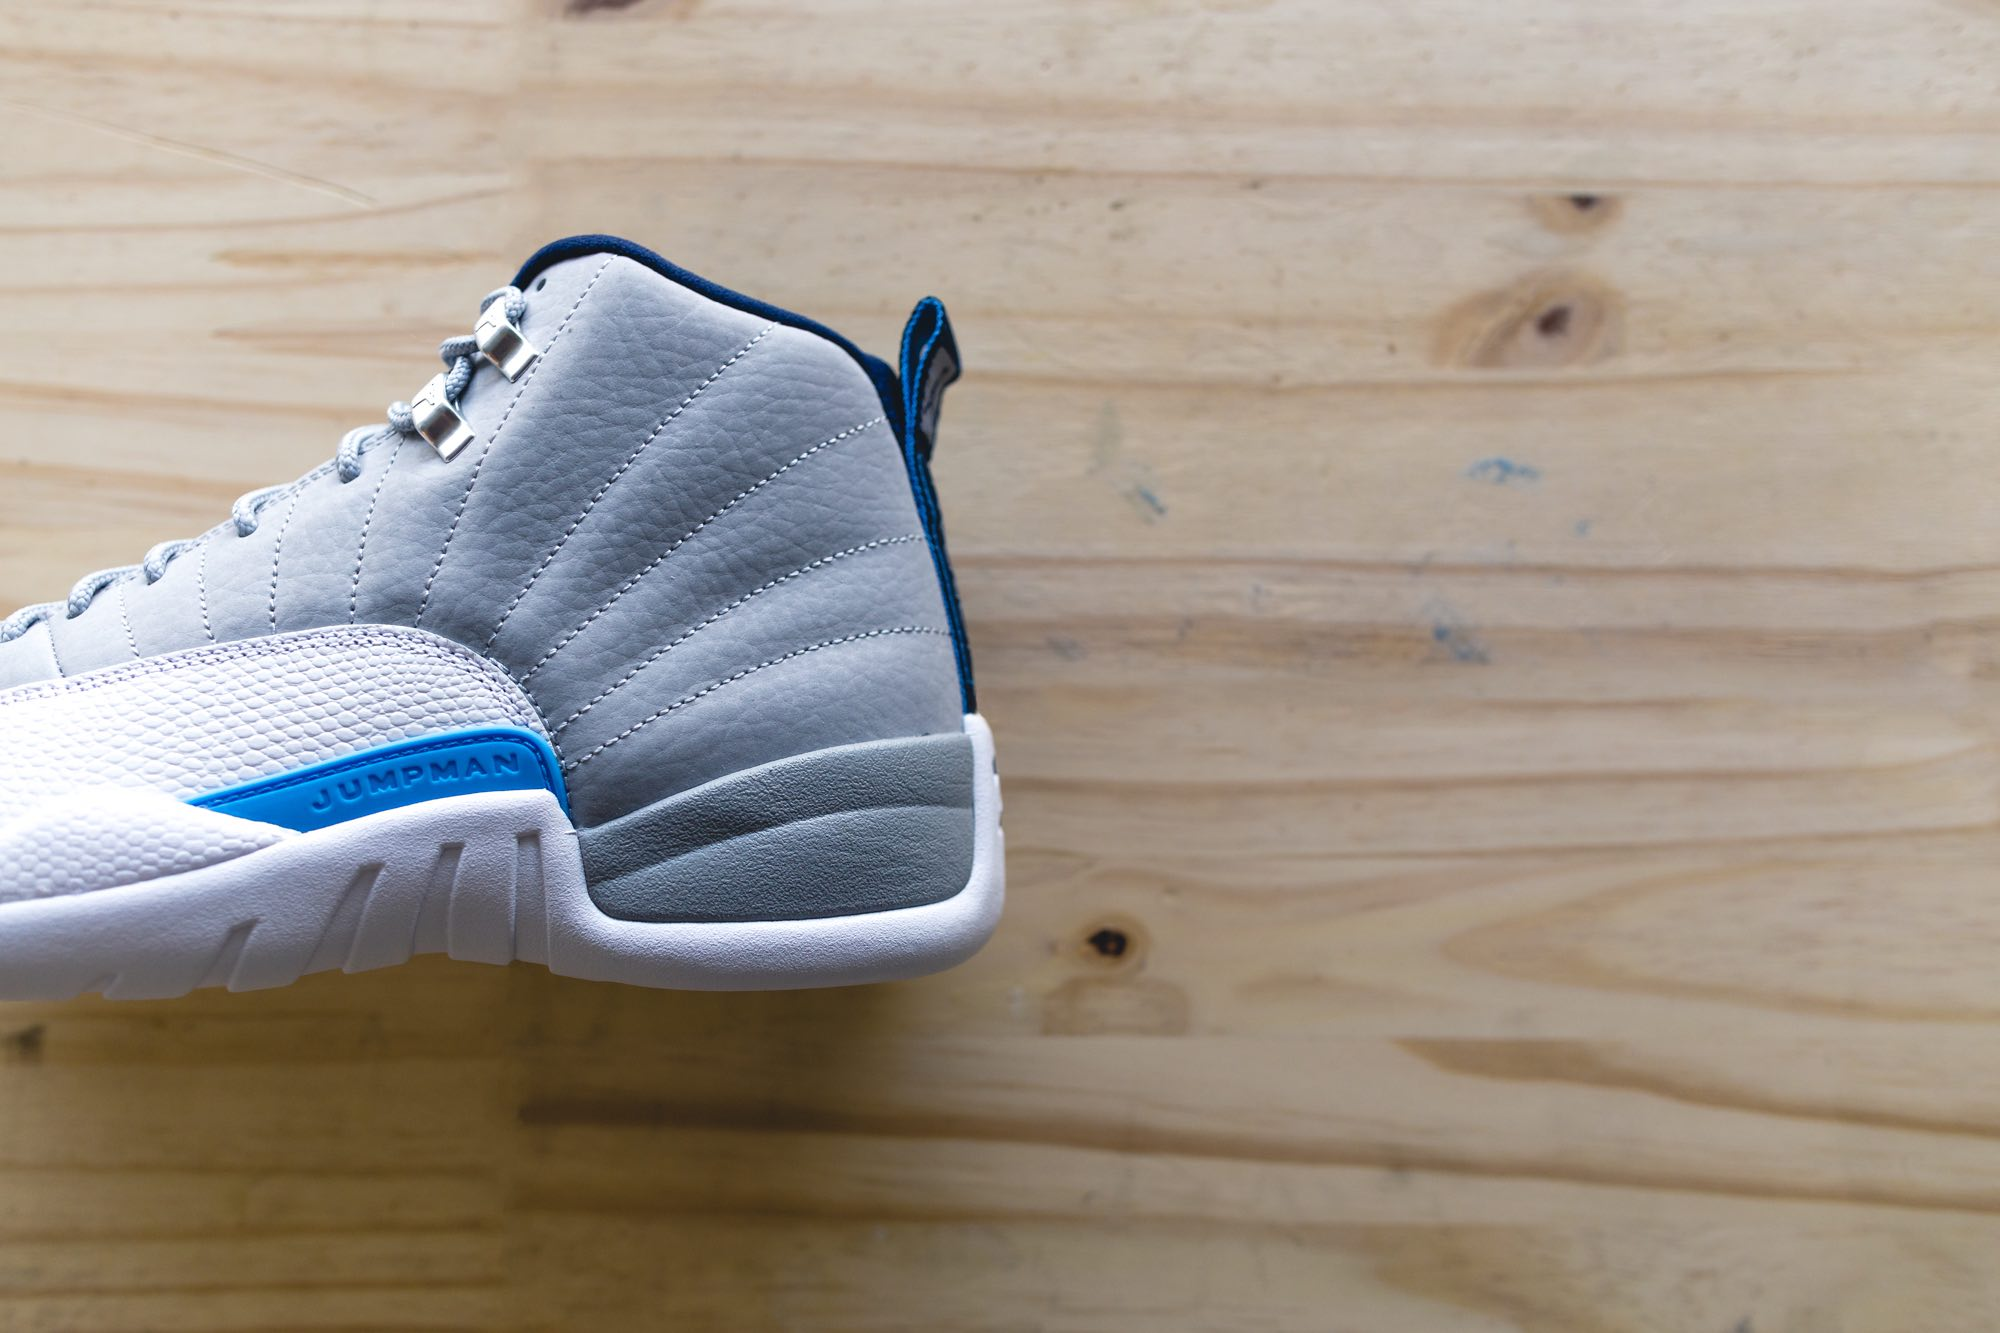 13b12626ee0c The Air Jordan 12 Grey University Blue Arrives This Weekend - Unlkd